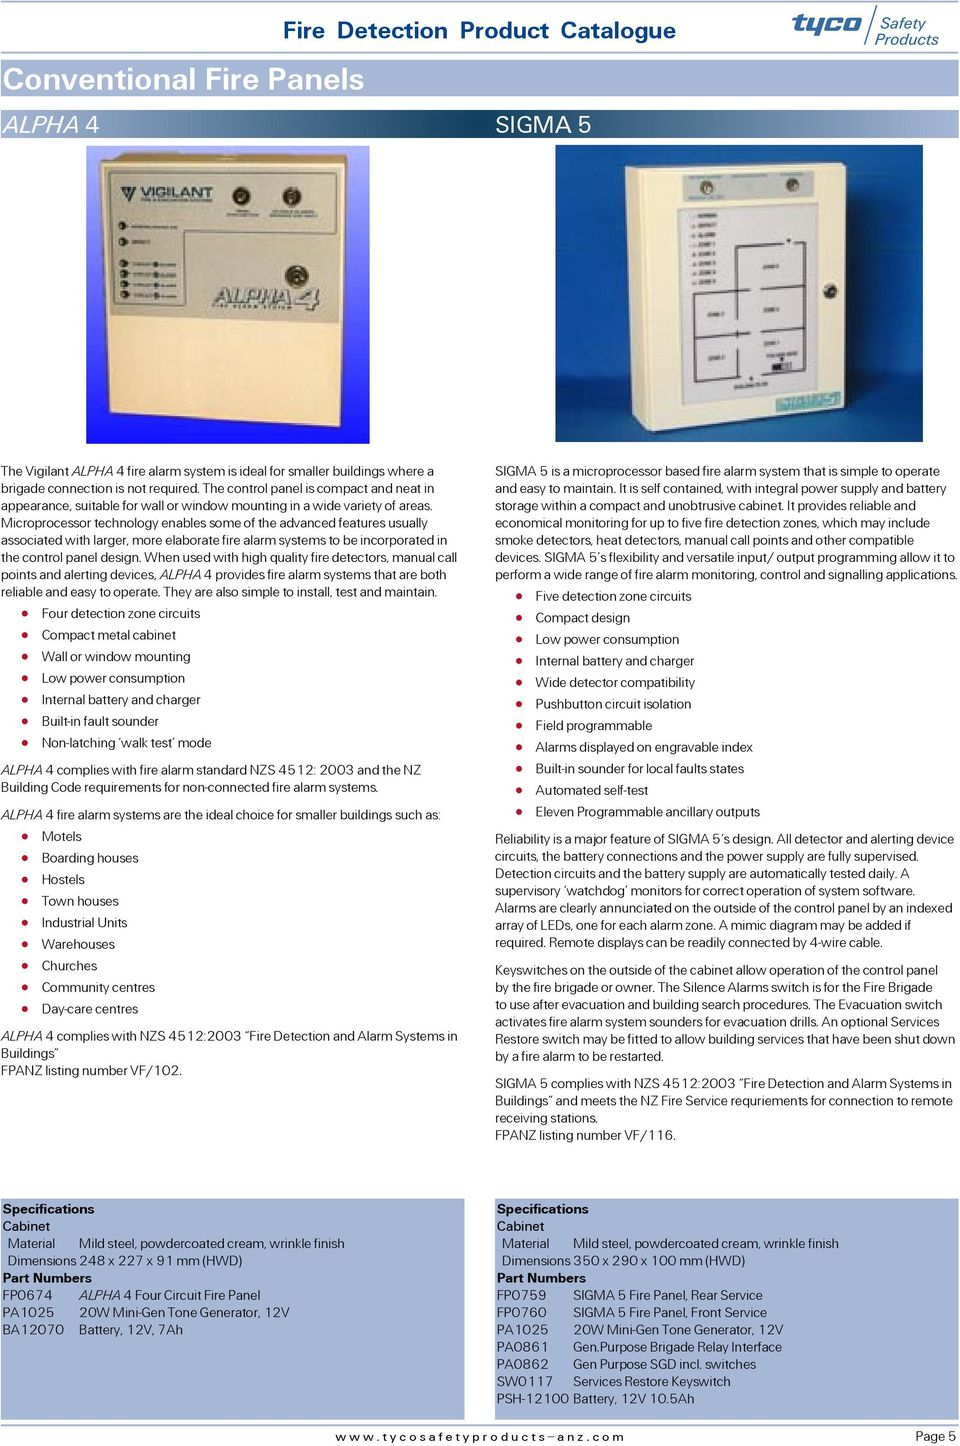 Tyco Safety Products Fire Detection New Zealand Product Catalogue System Ebl128 Panasonic Electric Works Europe Ag Microprocessor Technology Enables Some Of The Advanced Features Usually Associated With Larger More Elaborate